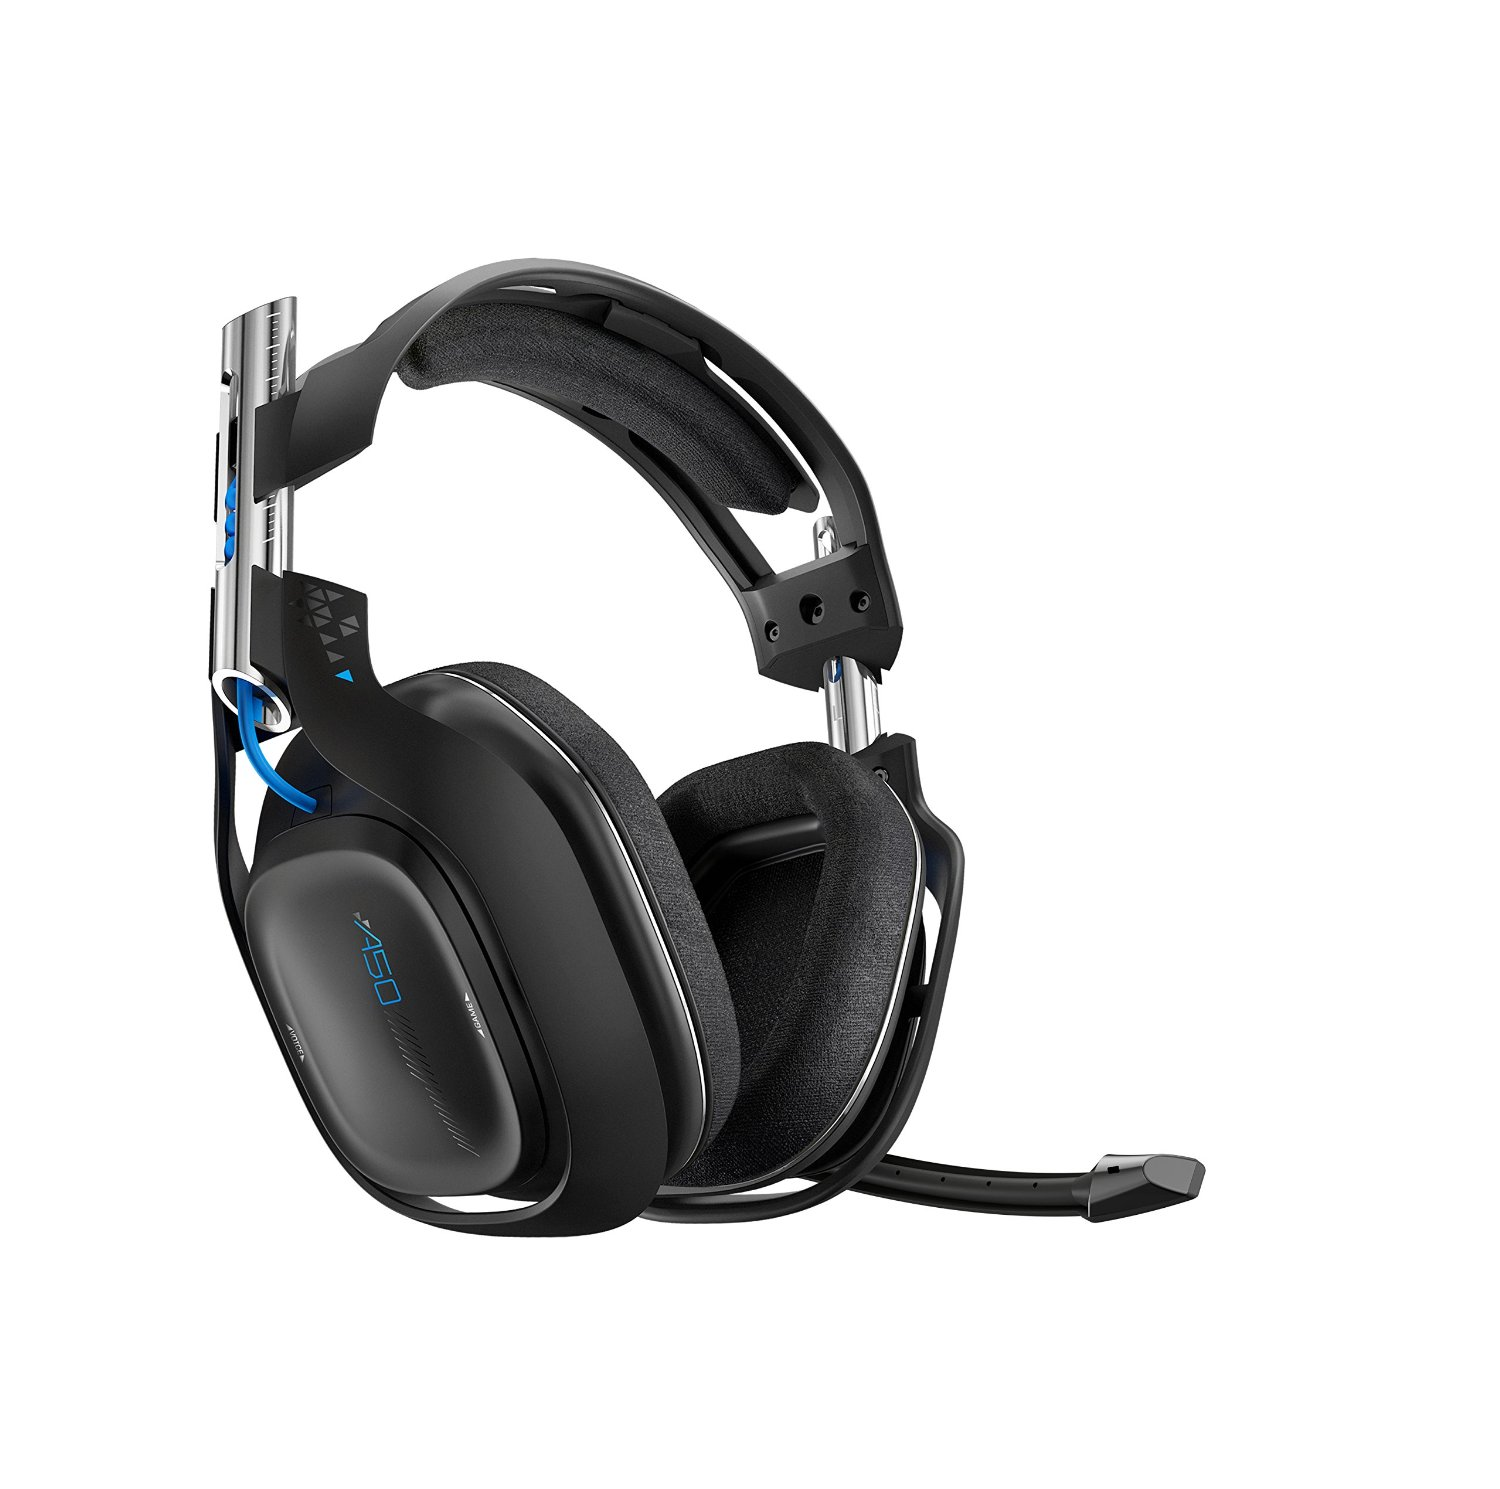 85ae906ce6eac0 You can see our individual review of the Turtle Beach Elite 800 and Astro  Gaming A50 Wireless Headset or see what others are saying about the Astro  A50 and ...